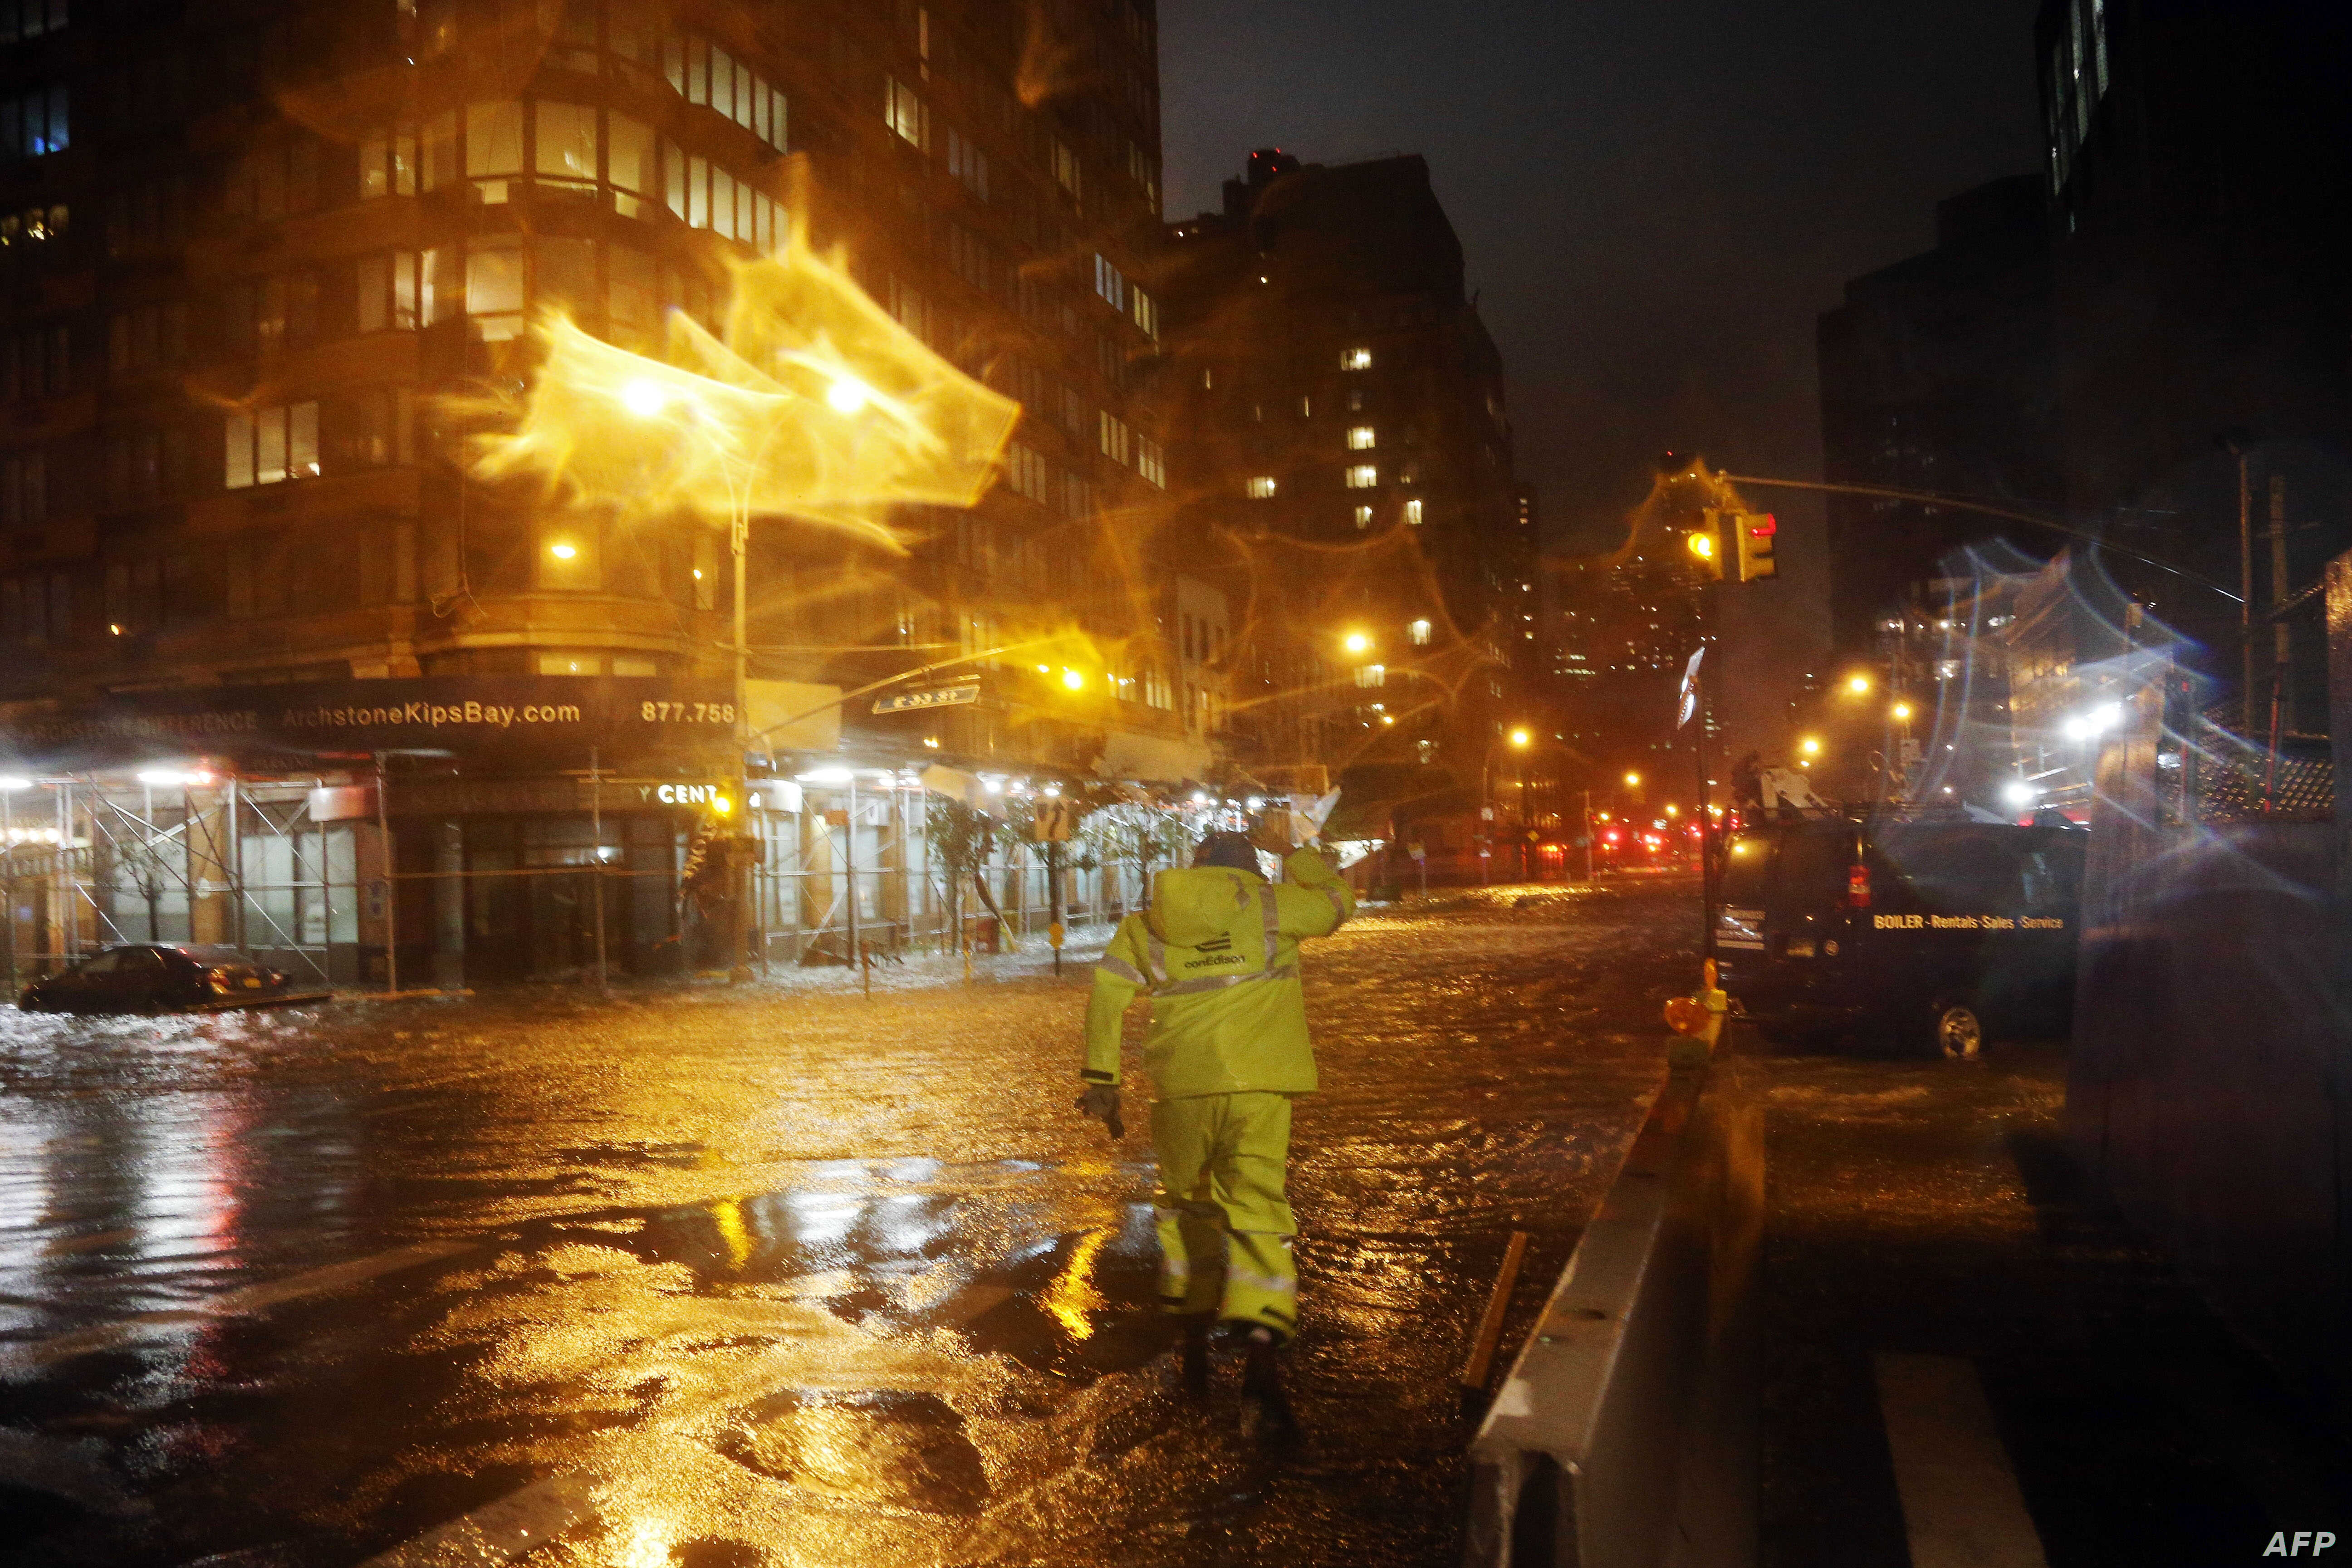 A Con Edison worker walks through the flood waters on the corner of 33th Street and 1st Street in front of NYU Langone Medical Center in Manhattan during rains from Hurricane Sandy on Oct. 29, 2012 in New York City. (Michael Heiman/Getty Images/AFP)